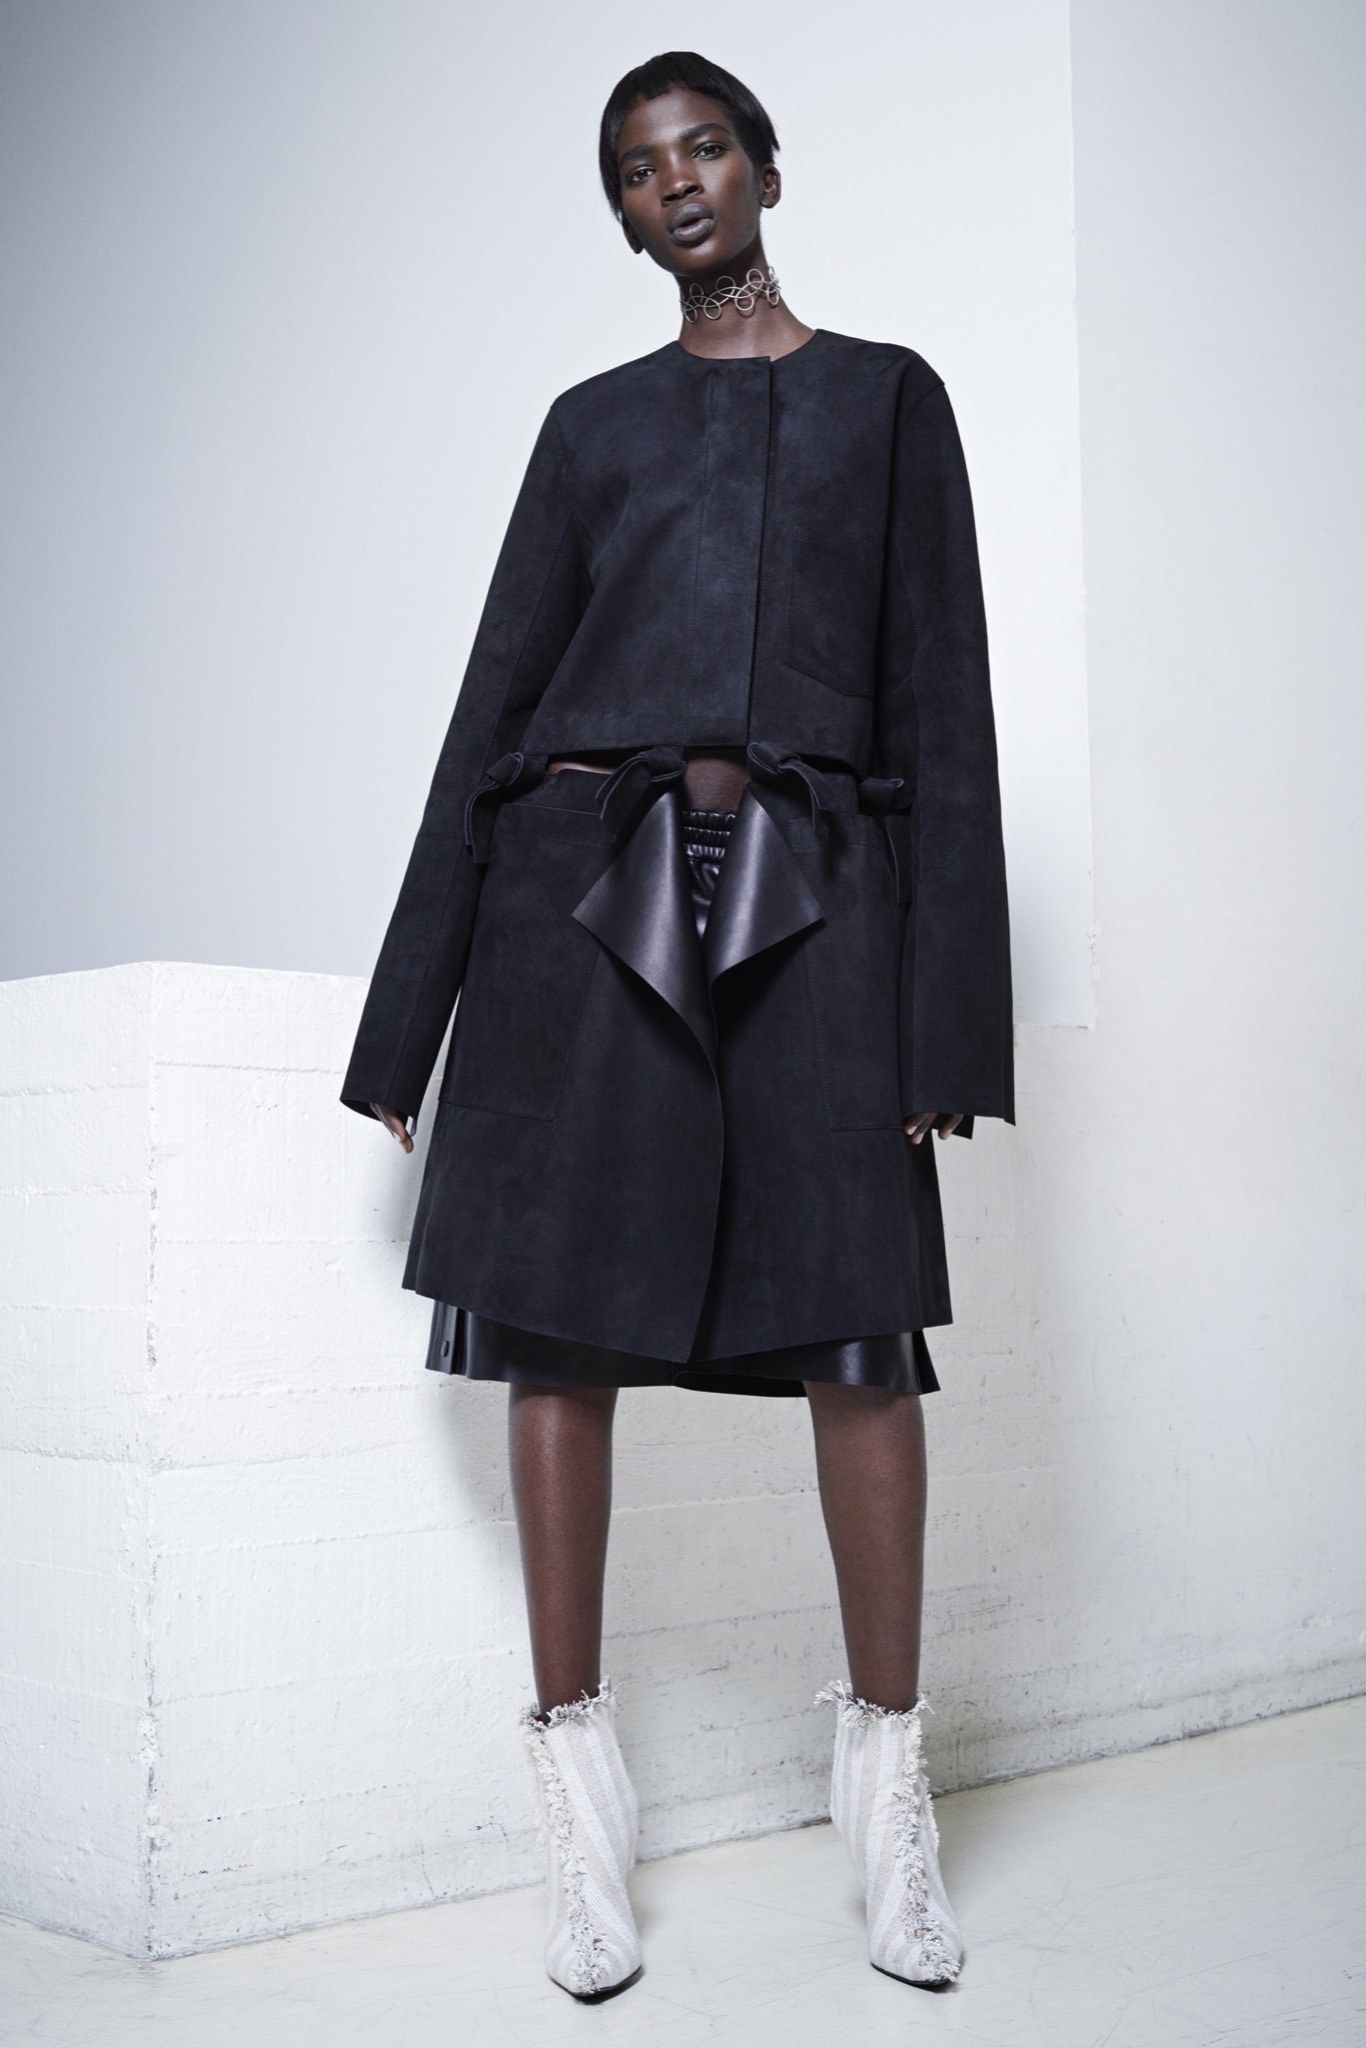 Acne Studios Resort 2016 Fashion Show - Look 7